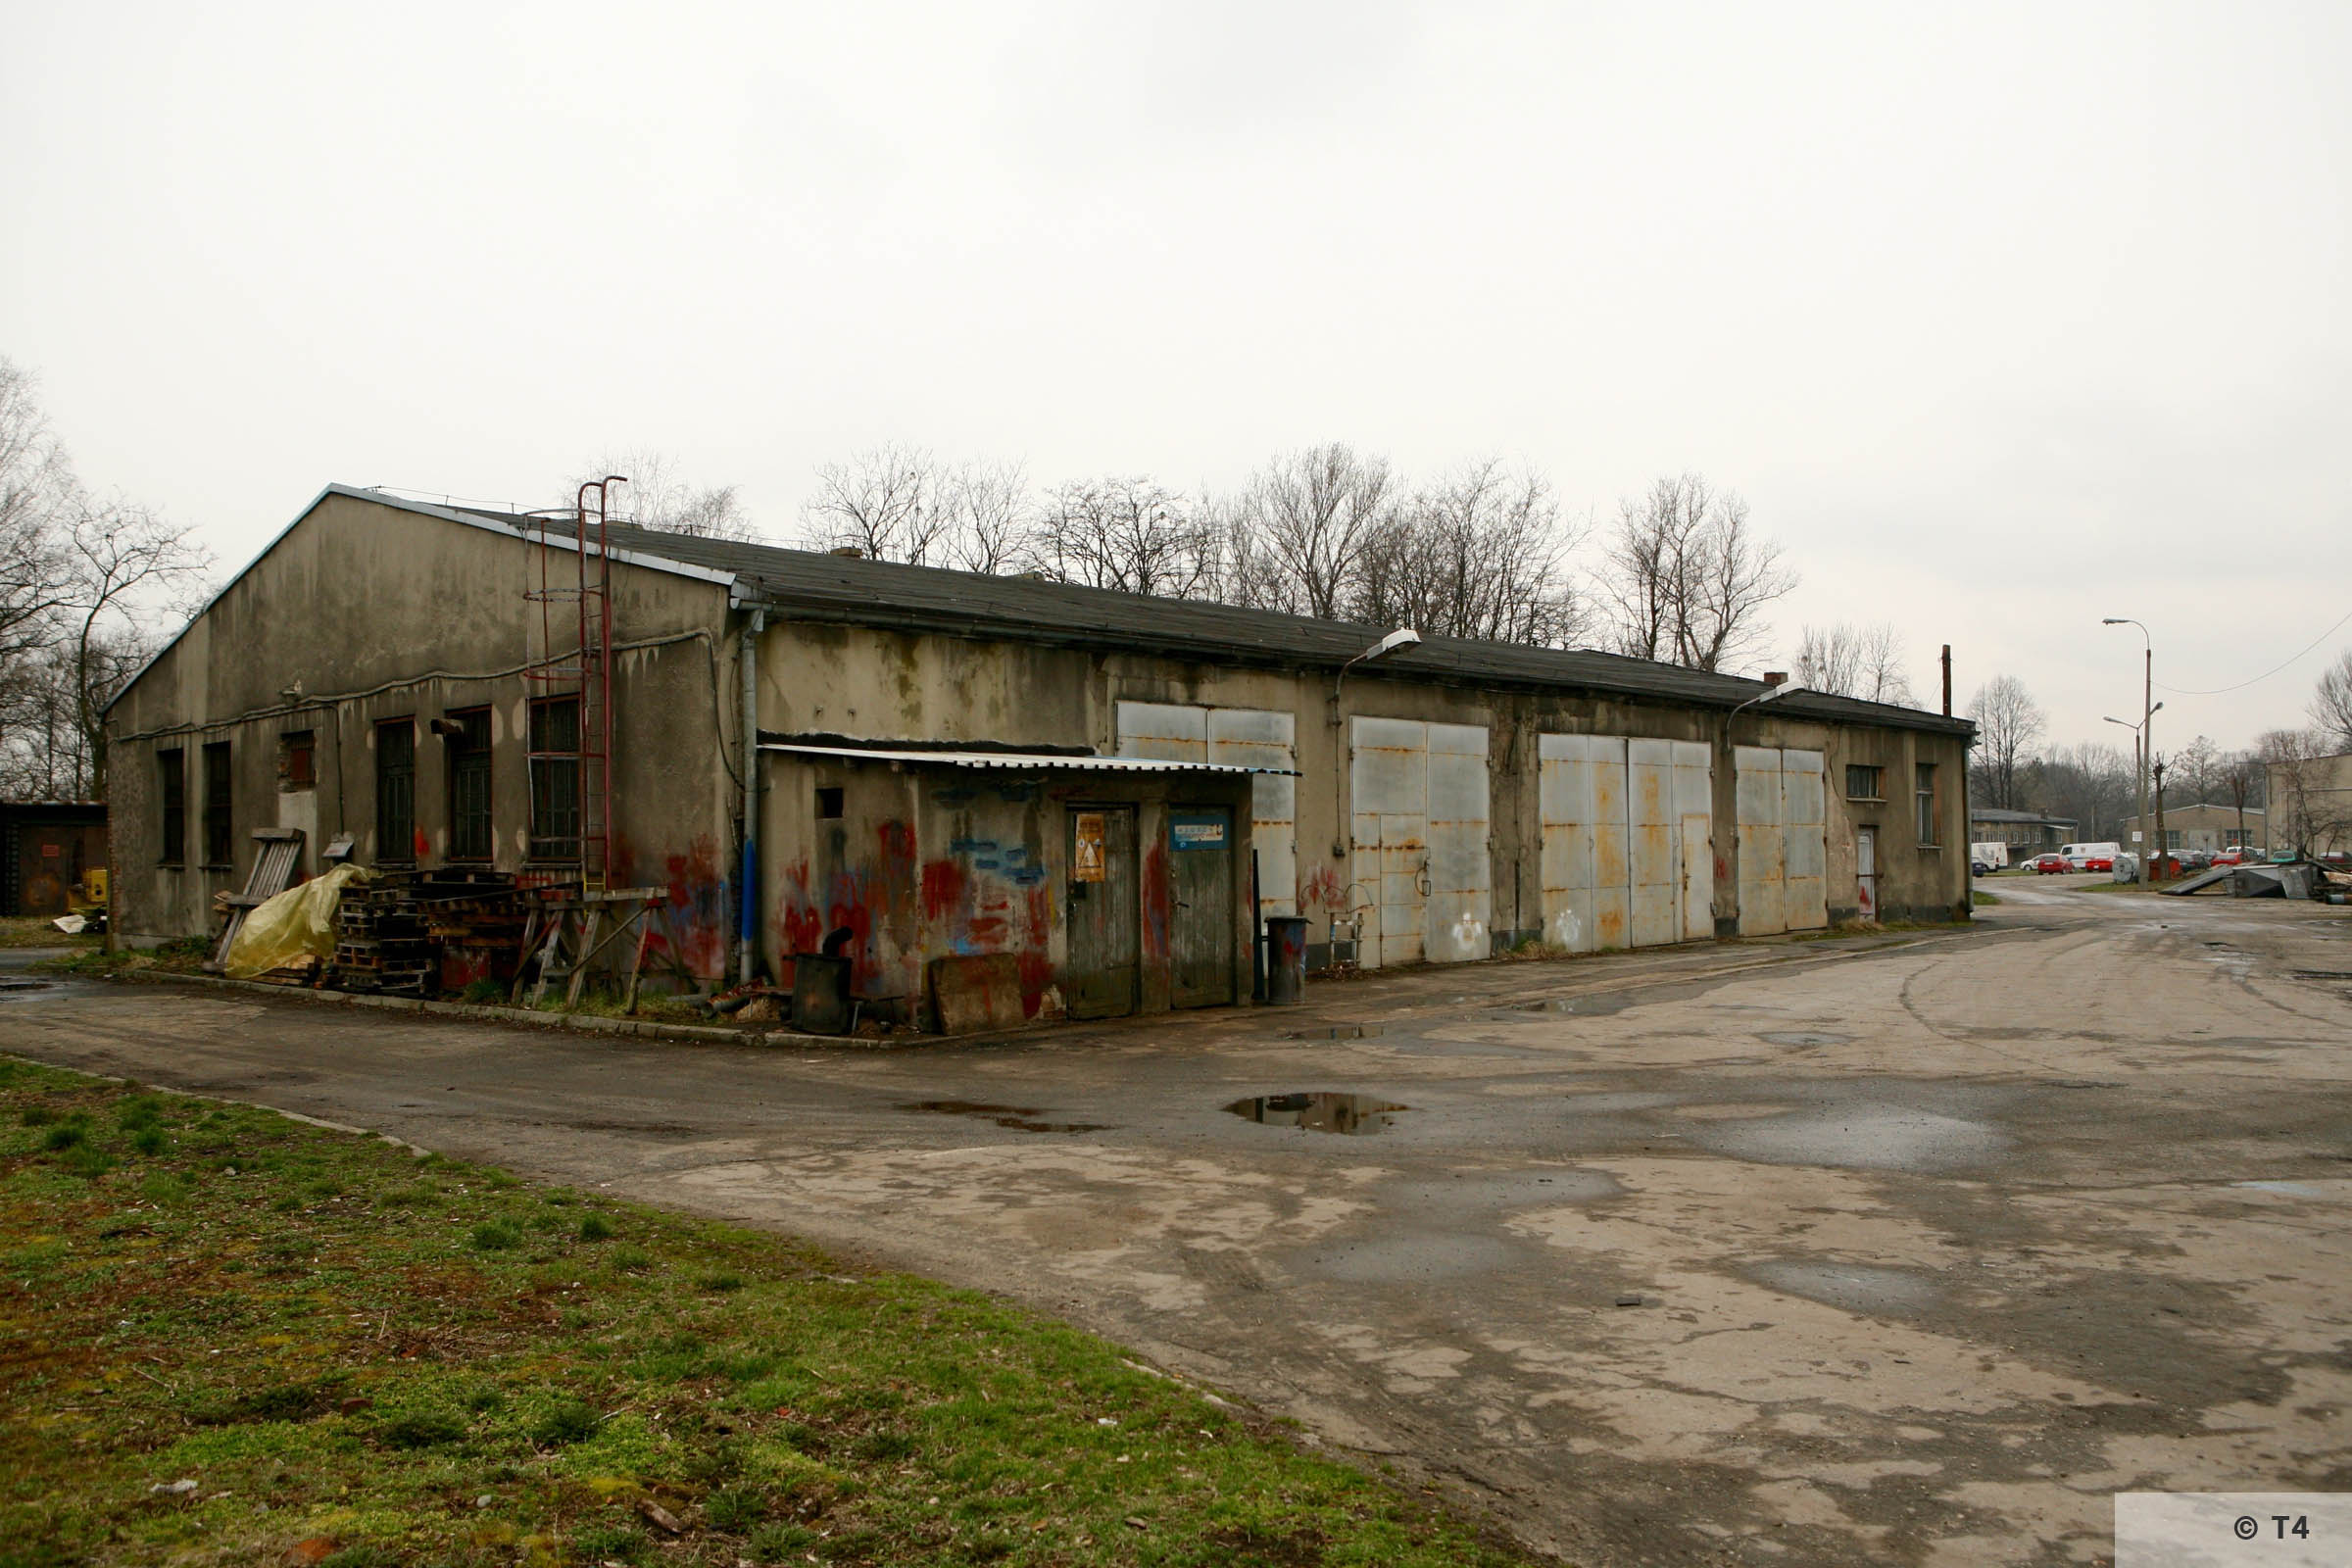 Workshops where prisoners worked. 2007 T4 4767